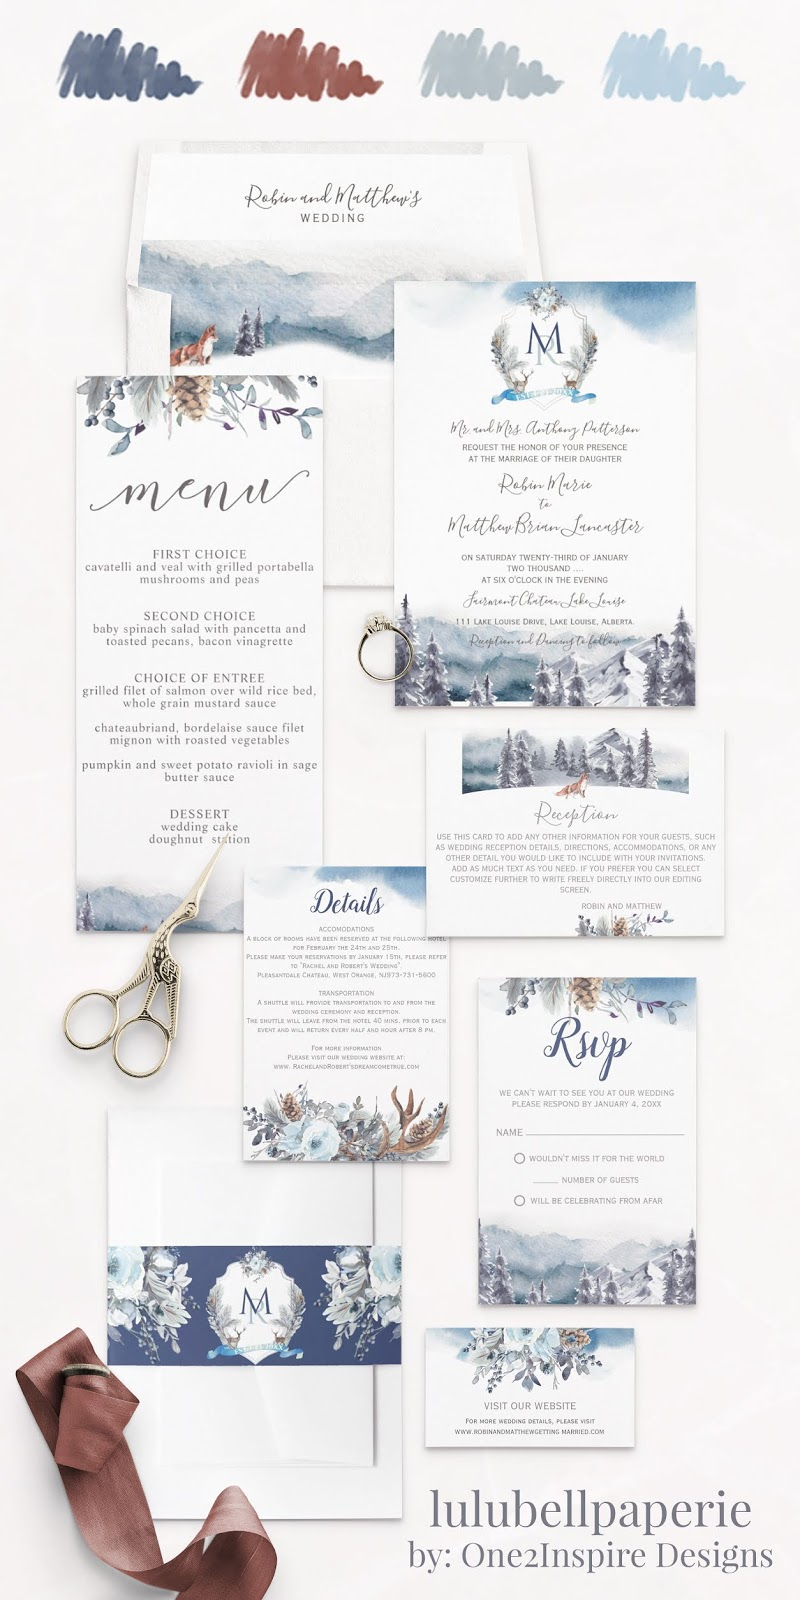 Dusty Blue Cinnamon and Navy Rustic Mountain Wedding Invitation Suite - Envelope Liners, Wedding Invites, Menus, Reception Cards, Details Card, RSVP Cards, Belly Band Wraps, and Website Inserts